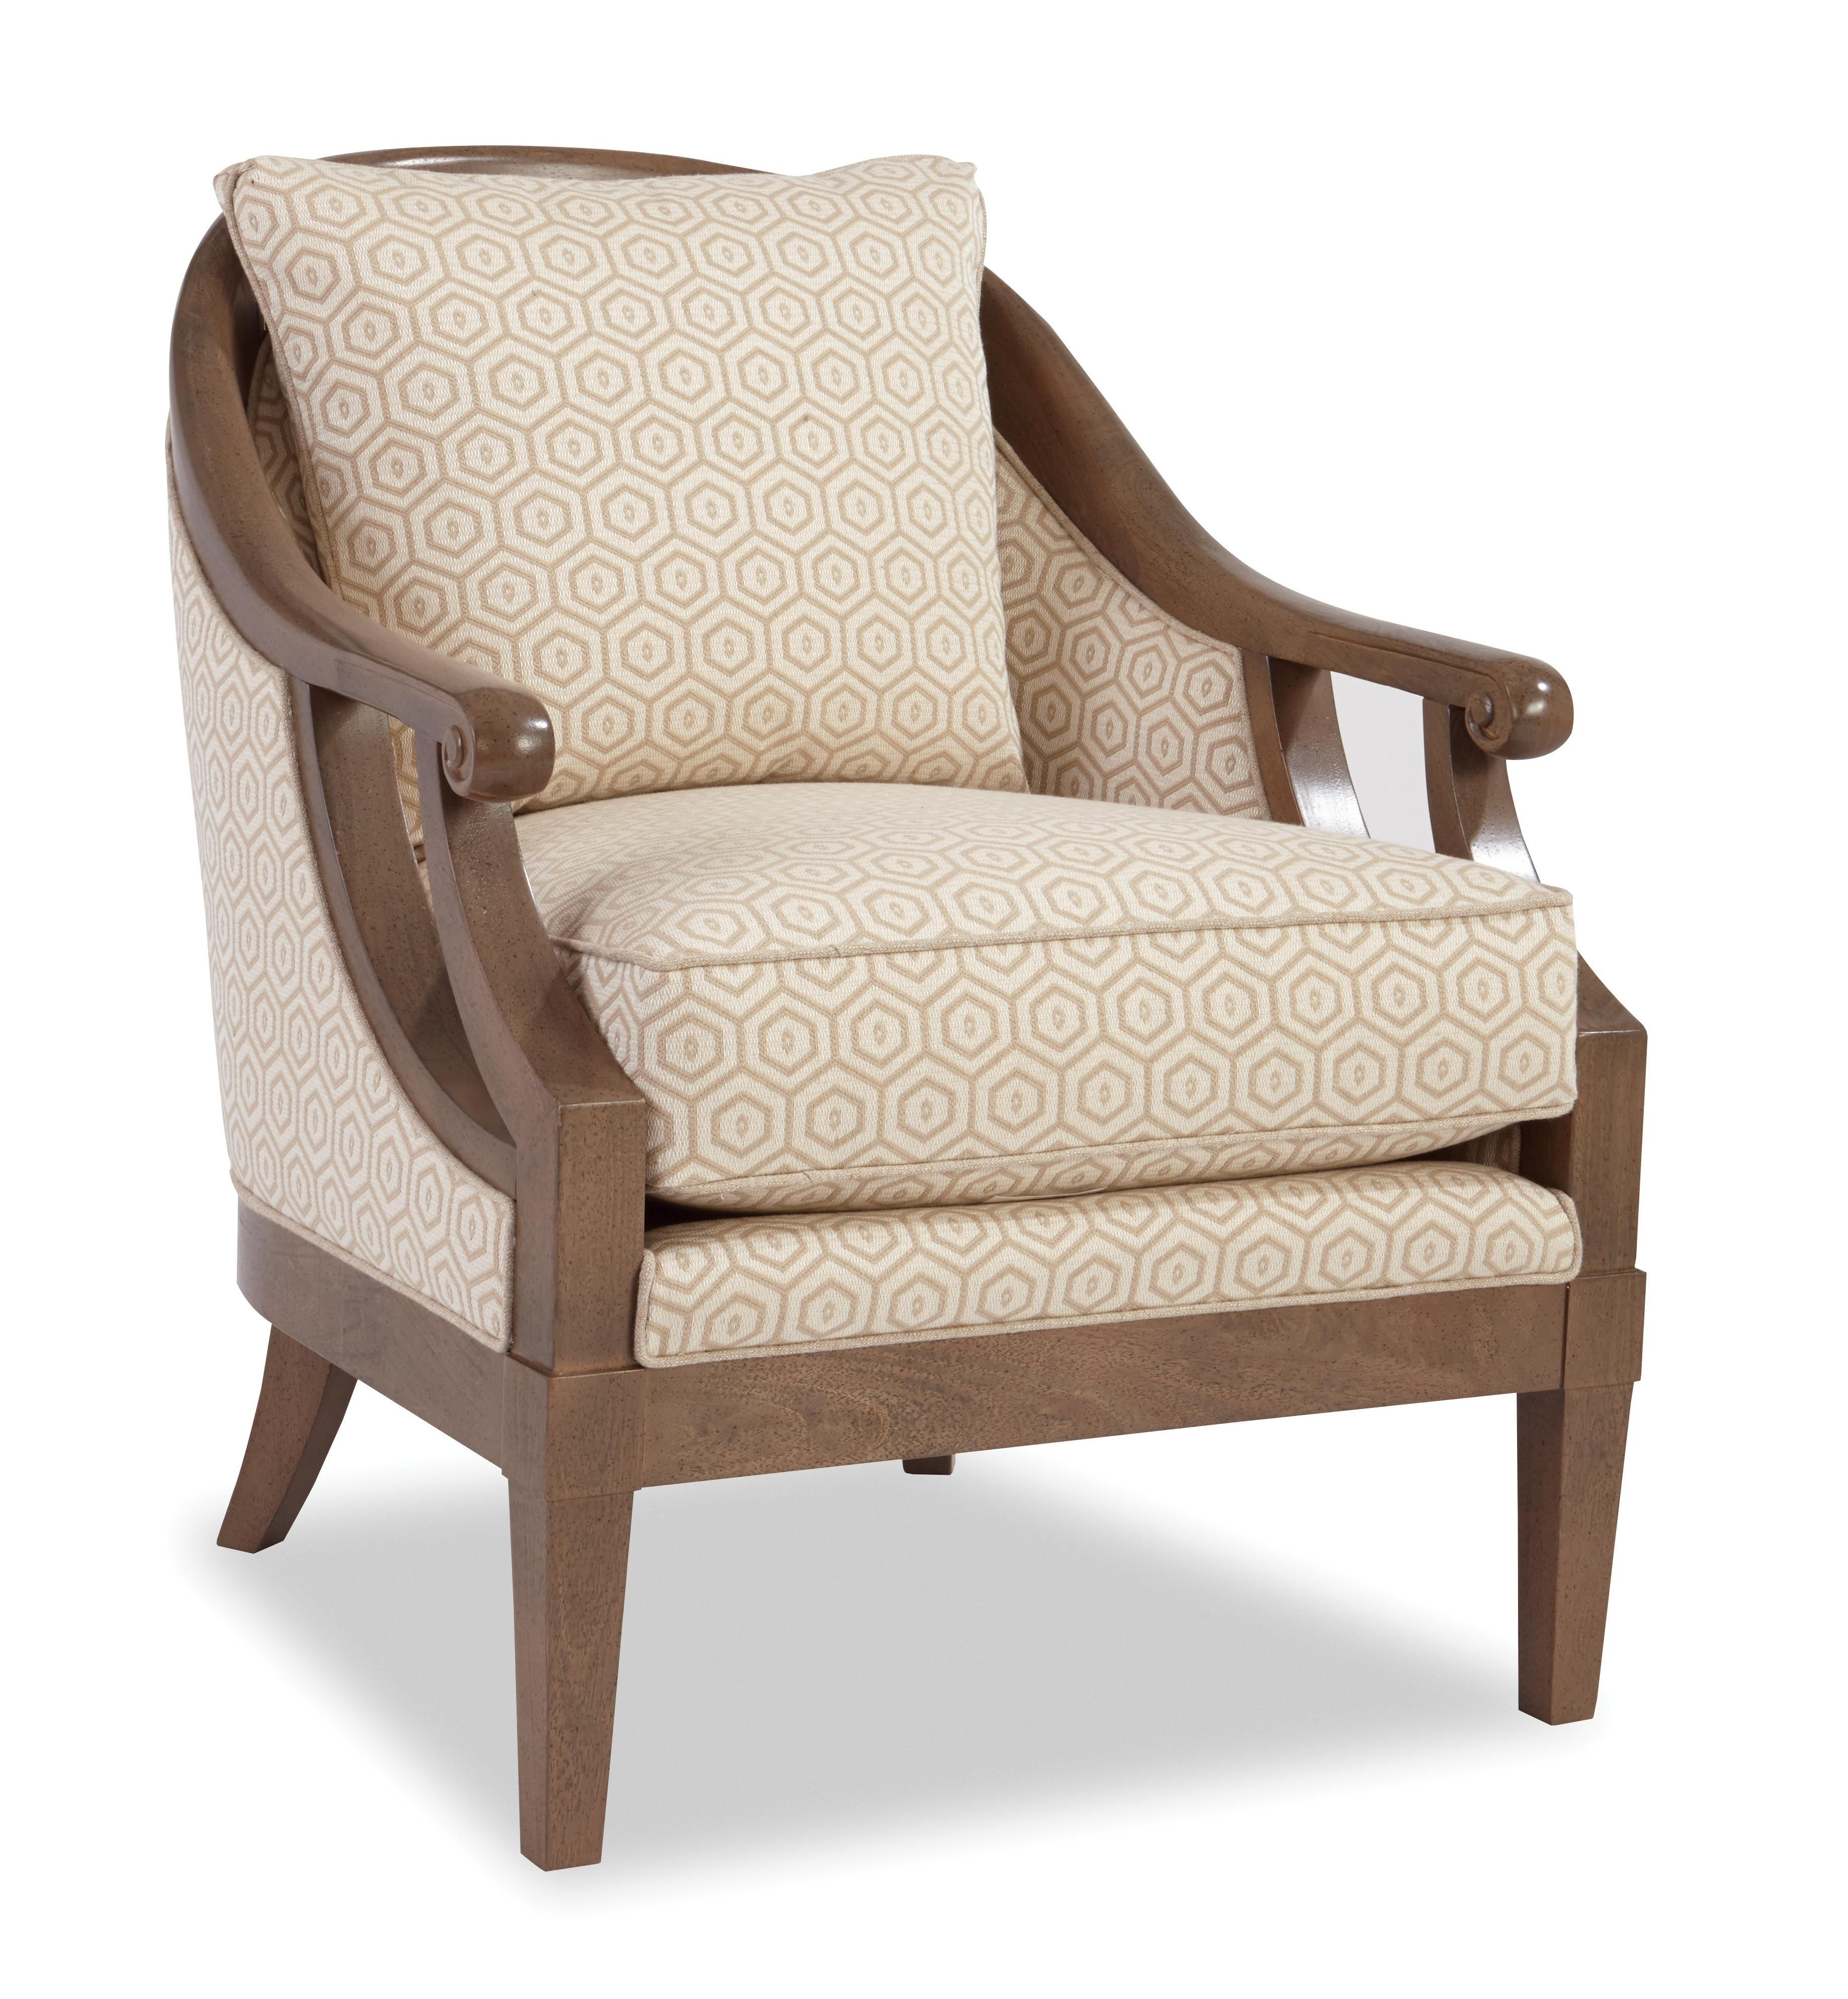 Traditional Wood Framed Accent Chair with Scroll Arms by